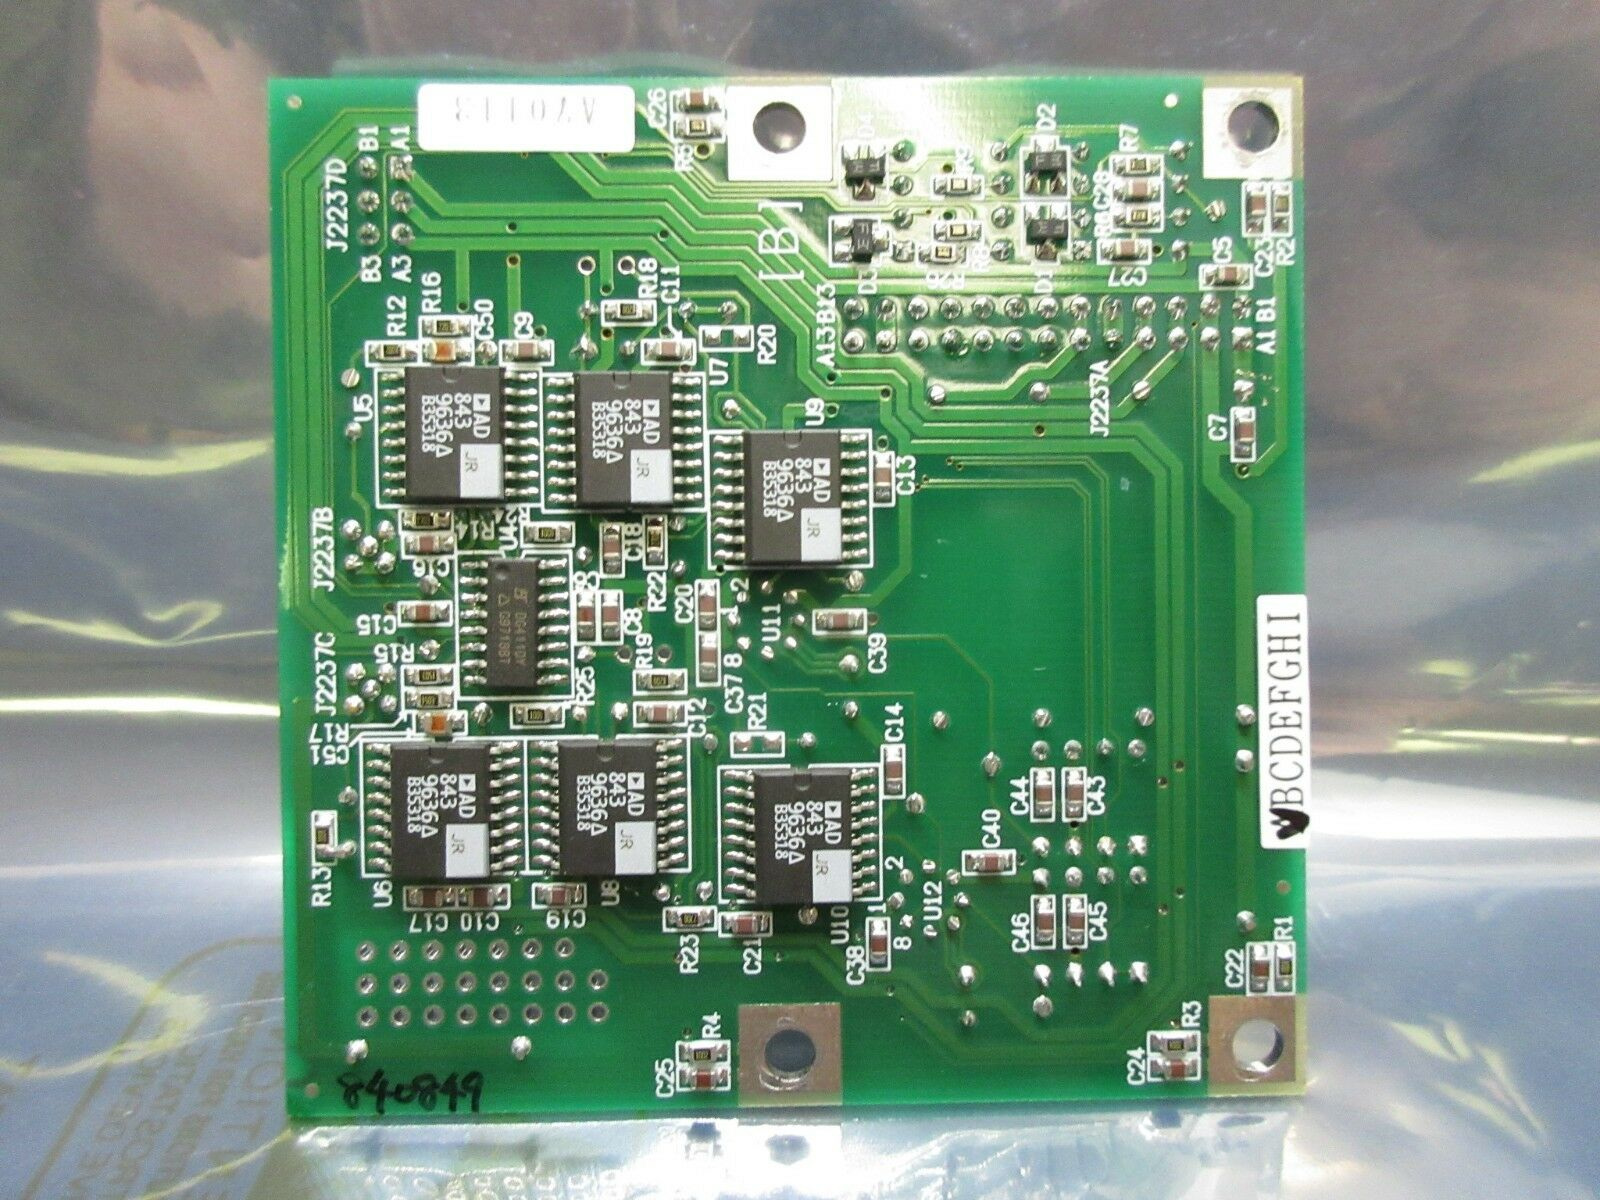 Nikon 4S007-794 Interface Board PCB XB-STGP/H NSR-S202A System Used